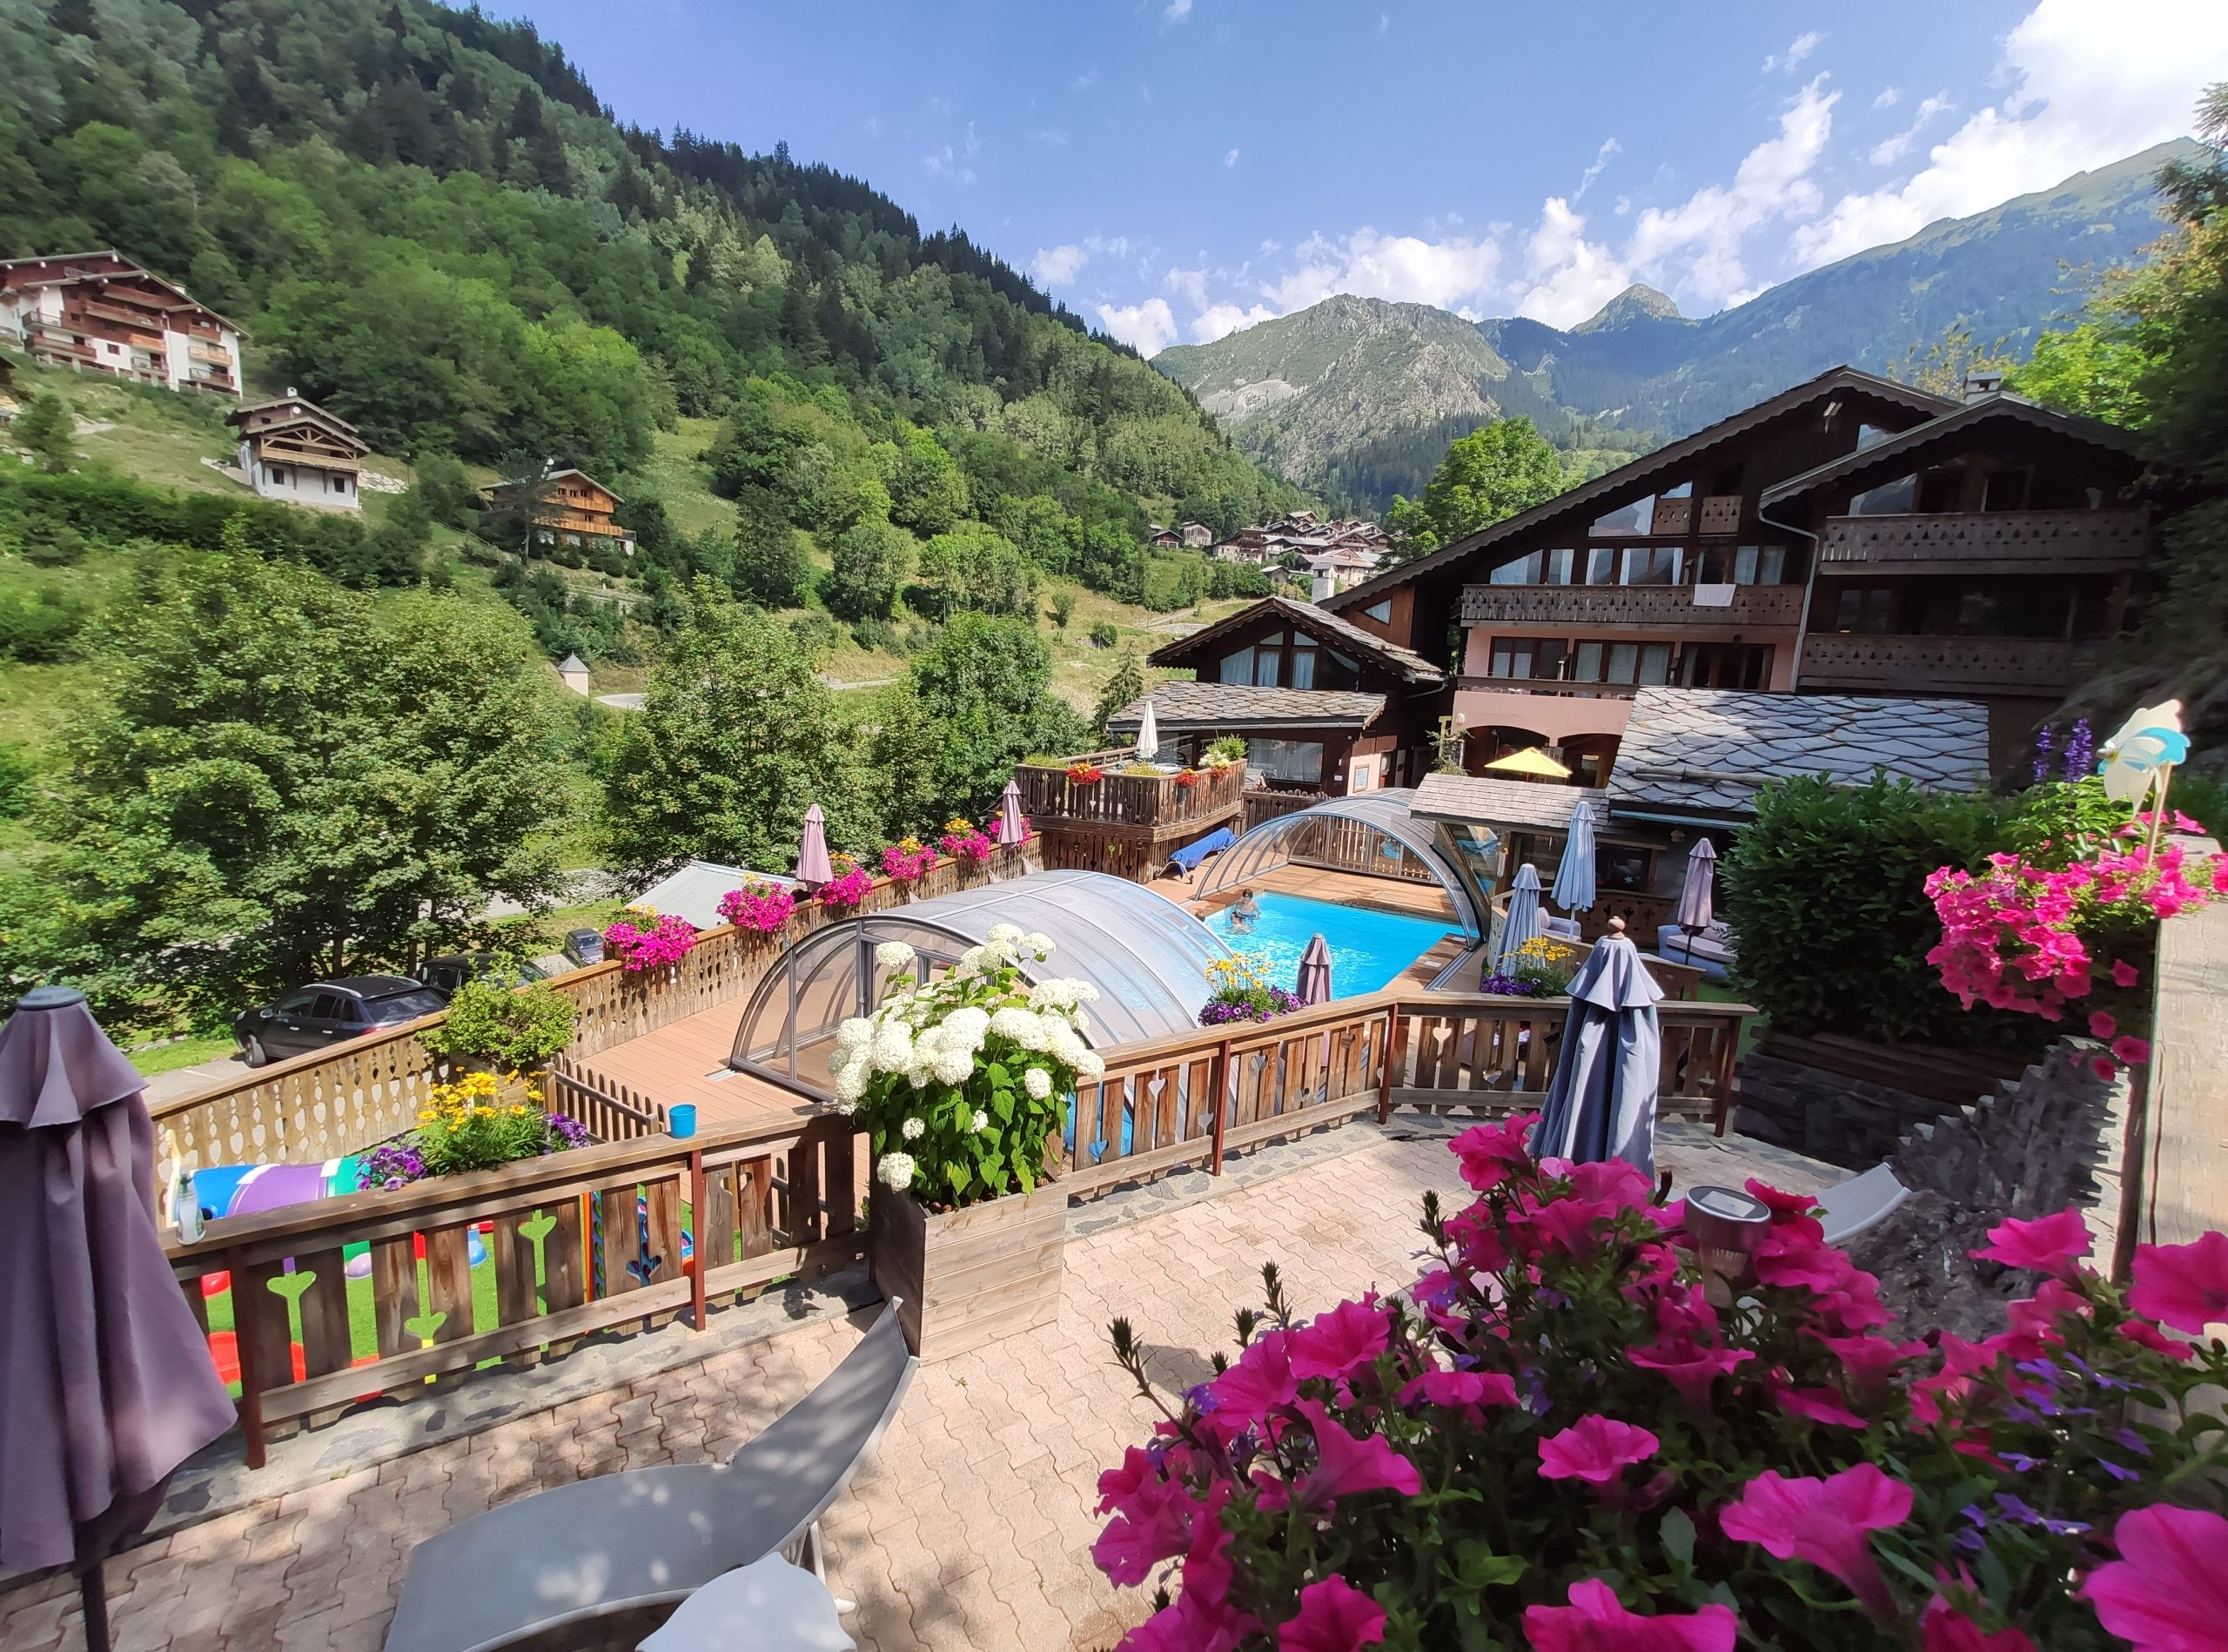 Summer holidays in Vanoise: the top 5 activities in Champagny